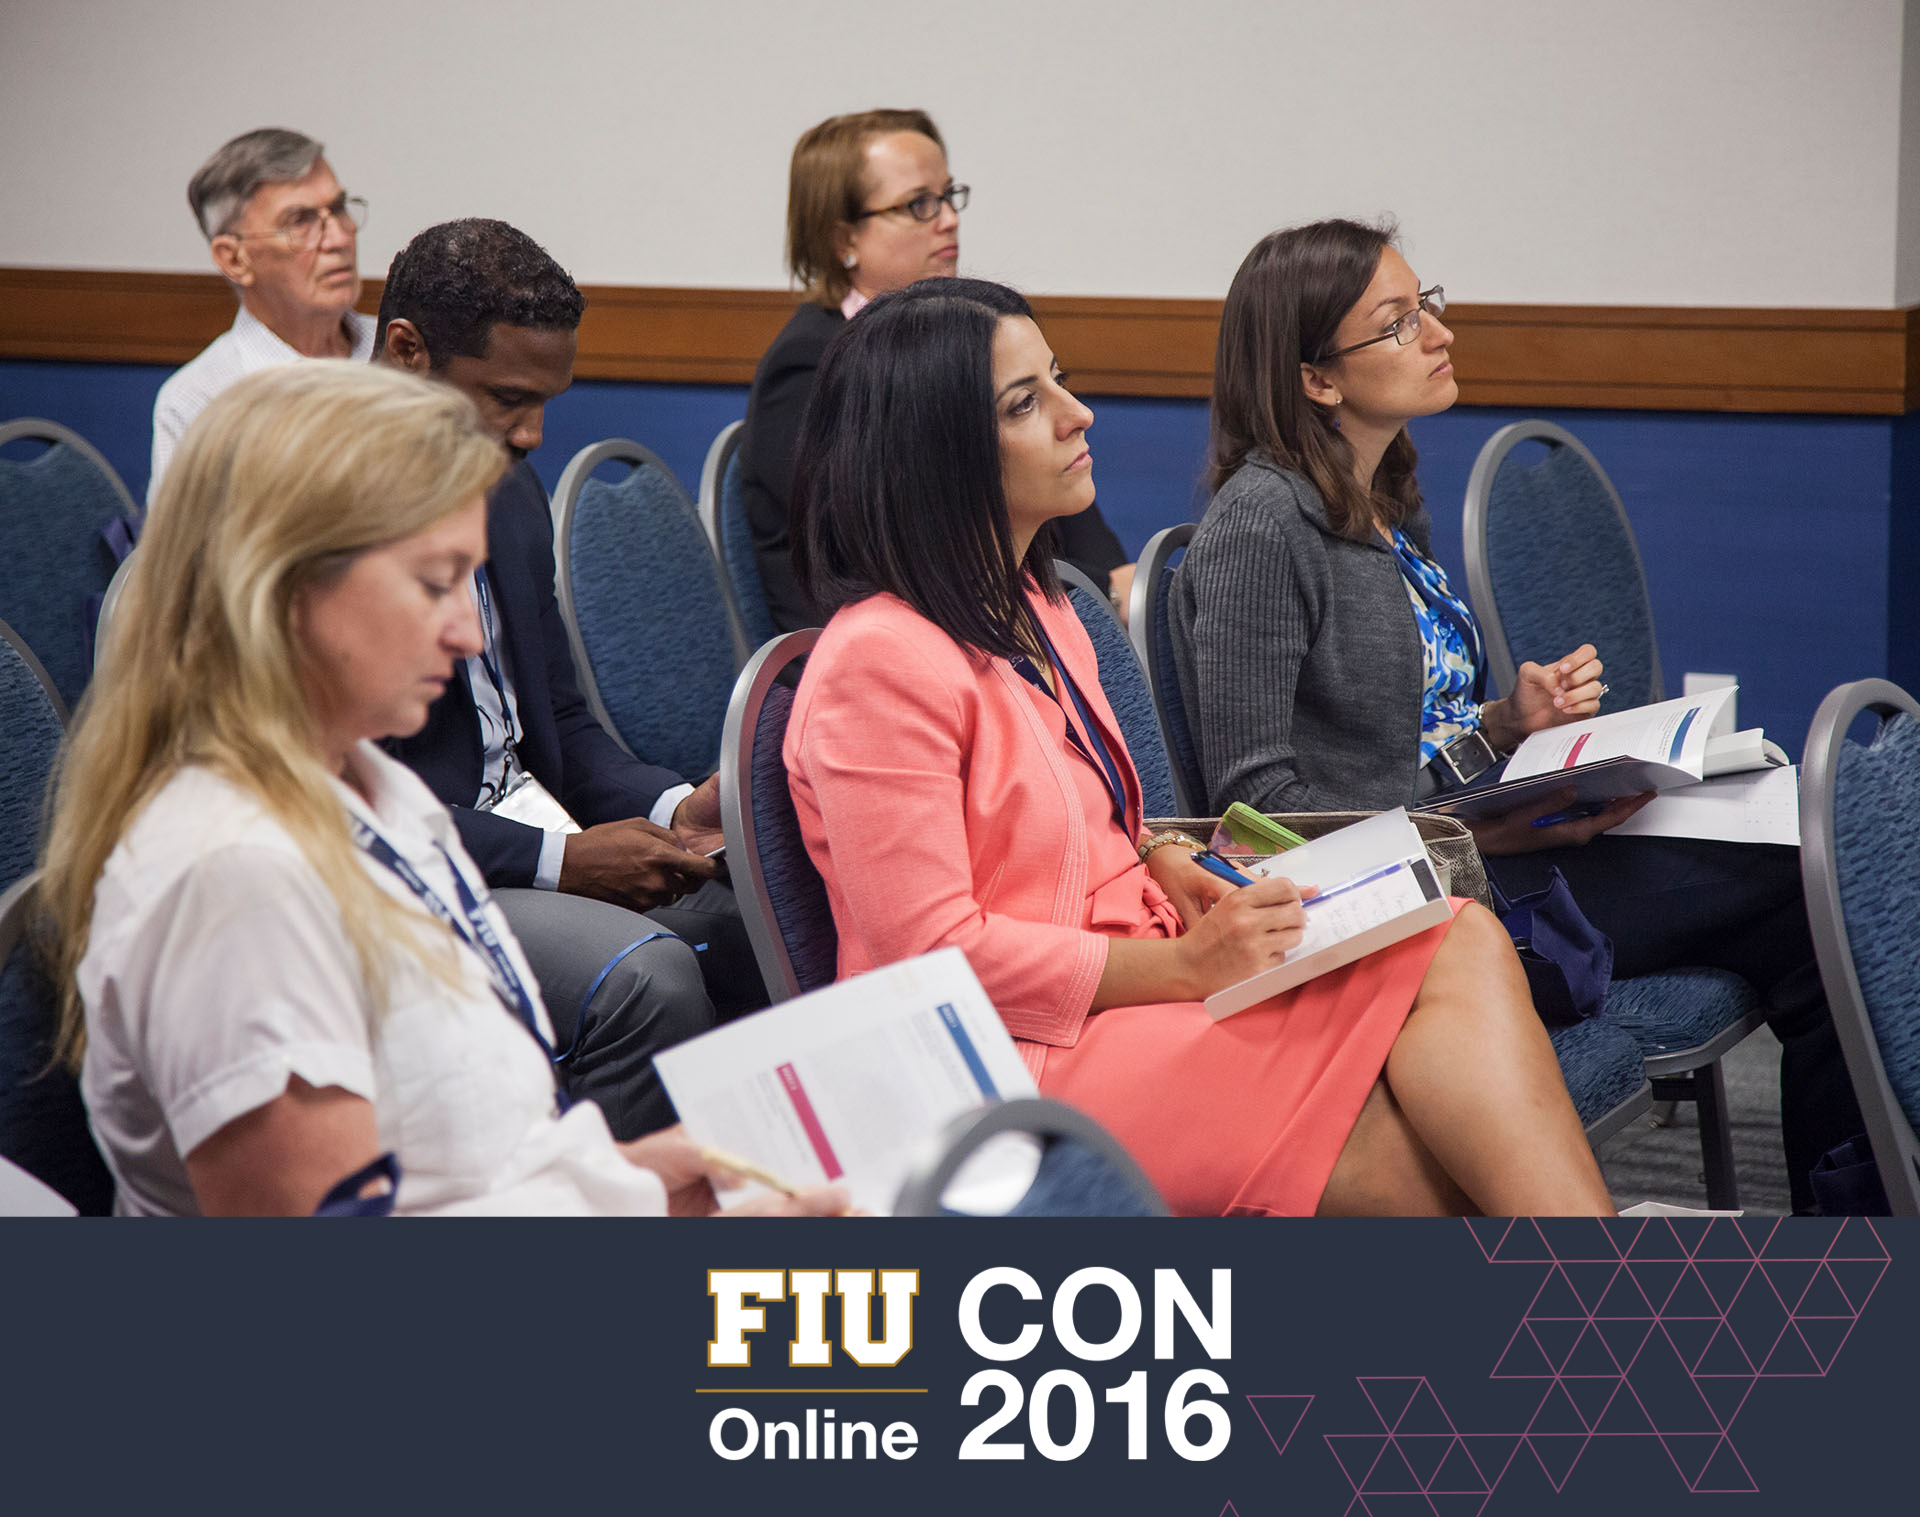 156.jpg FIU Online conference photos